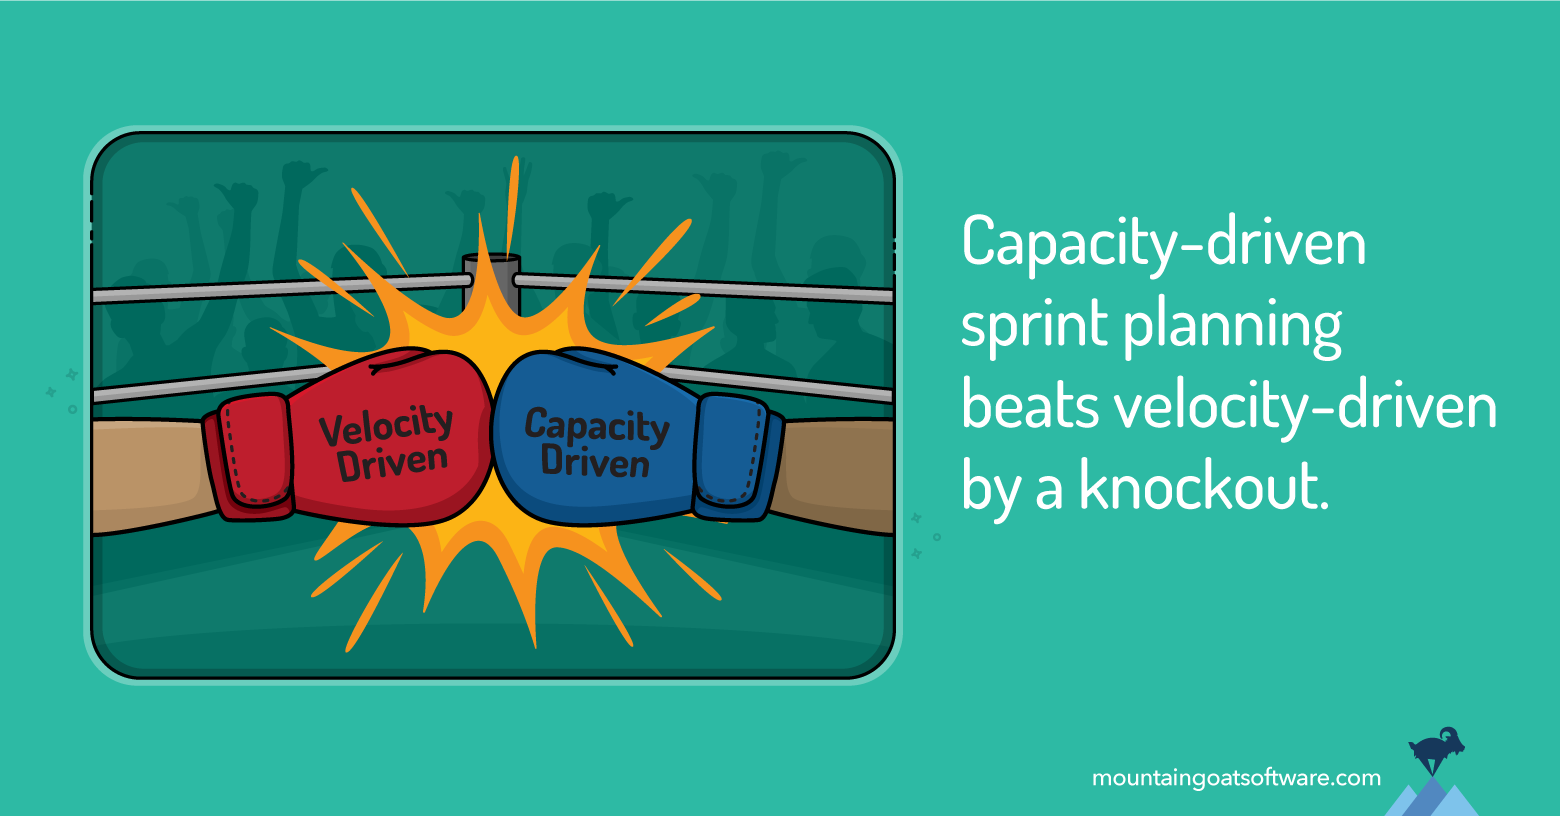 Why I Prefer Capacity-Driven Sprint Planning